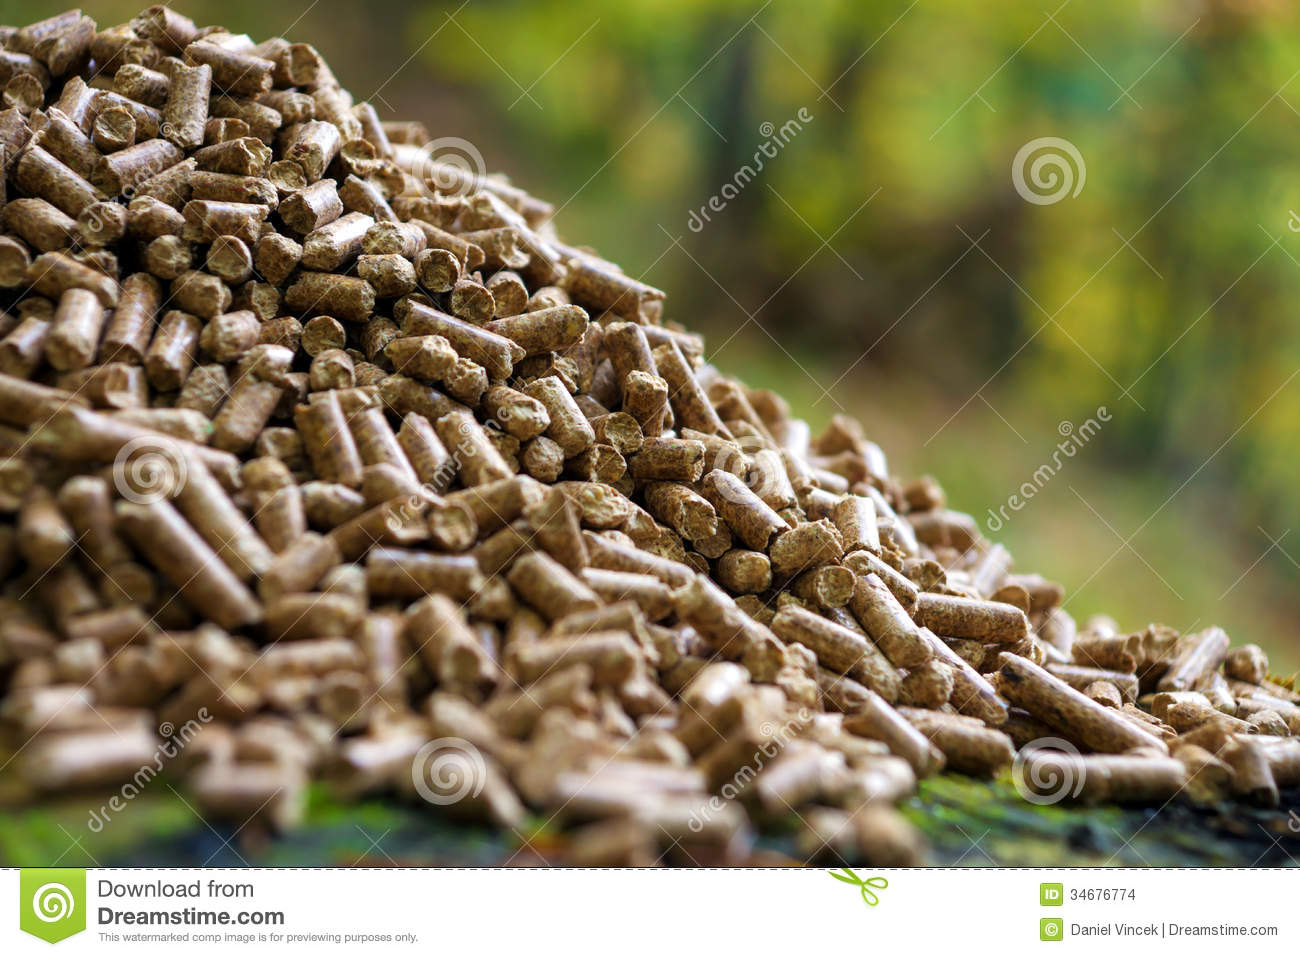 Wood Pellets Stock Images - Image: 34676774